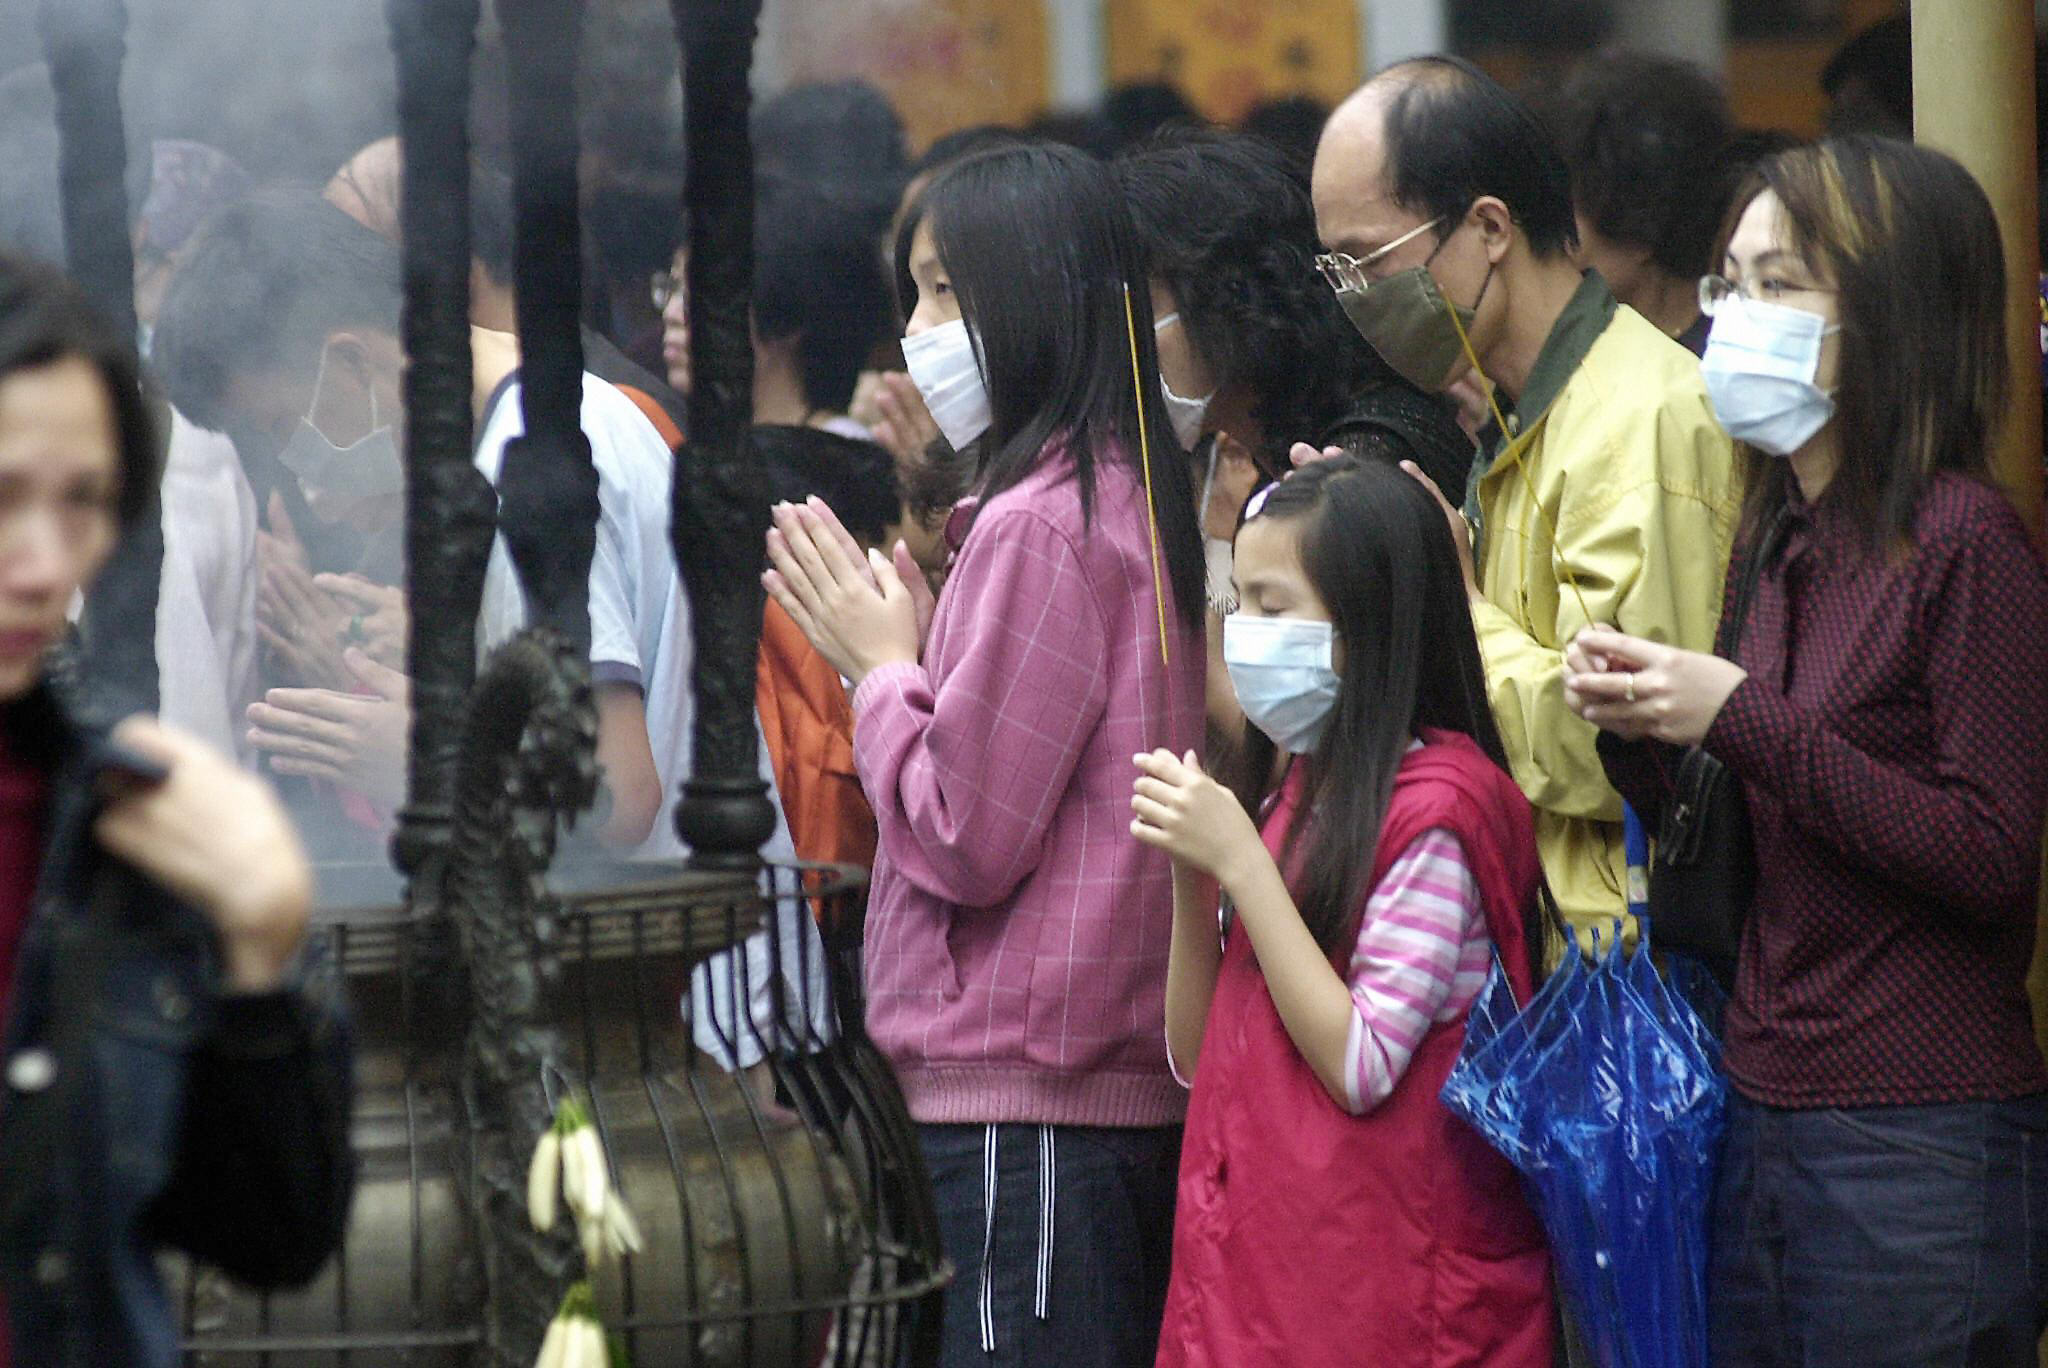 A group of Taiwanese wear face masks to protect themselves against infection from Severe Acute Respiratory Syndrome (SARS) while praying at Hsing Tien Kung Taoist temple in Taipei, in this file photo from May 18 2003.